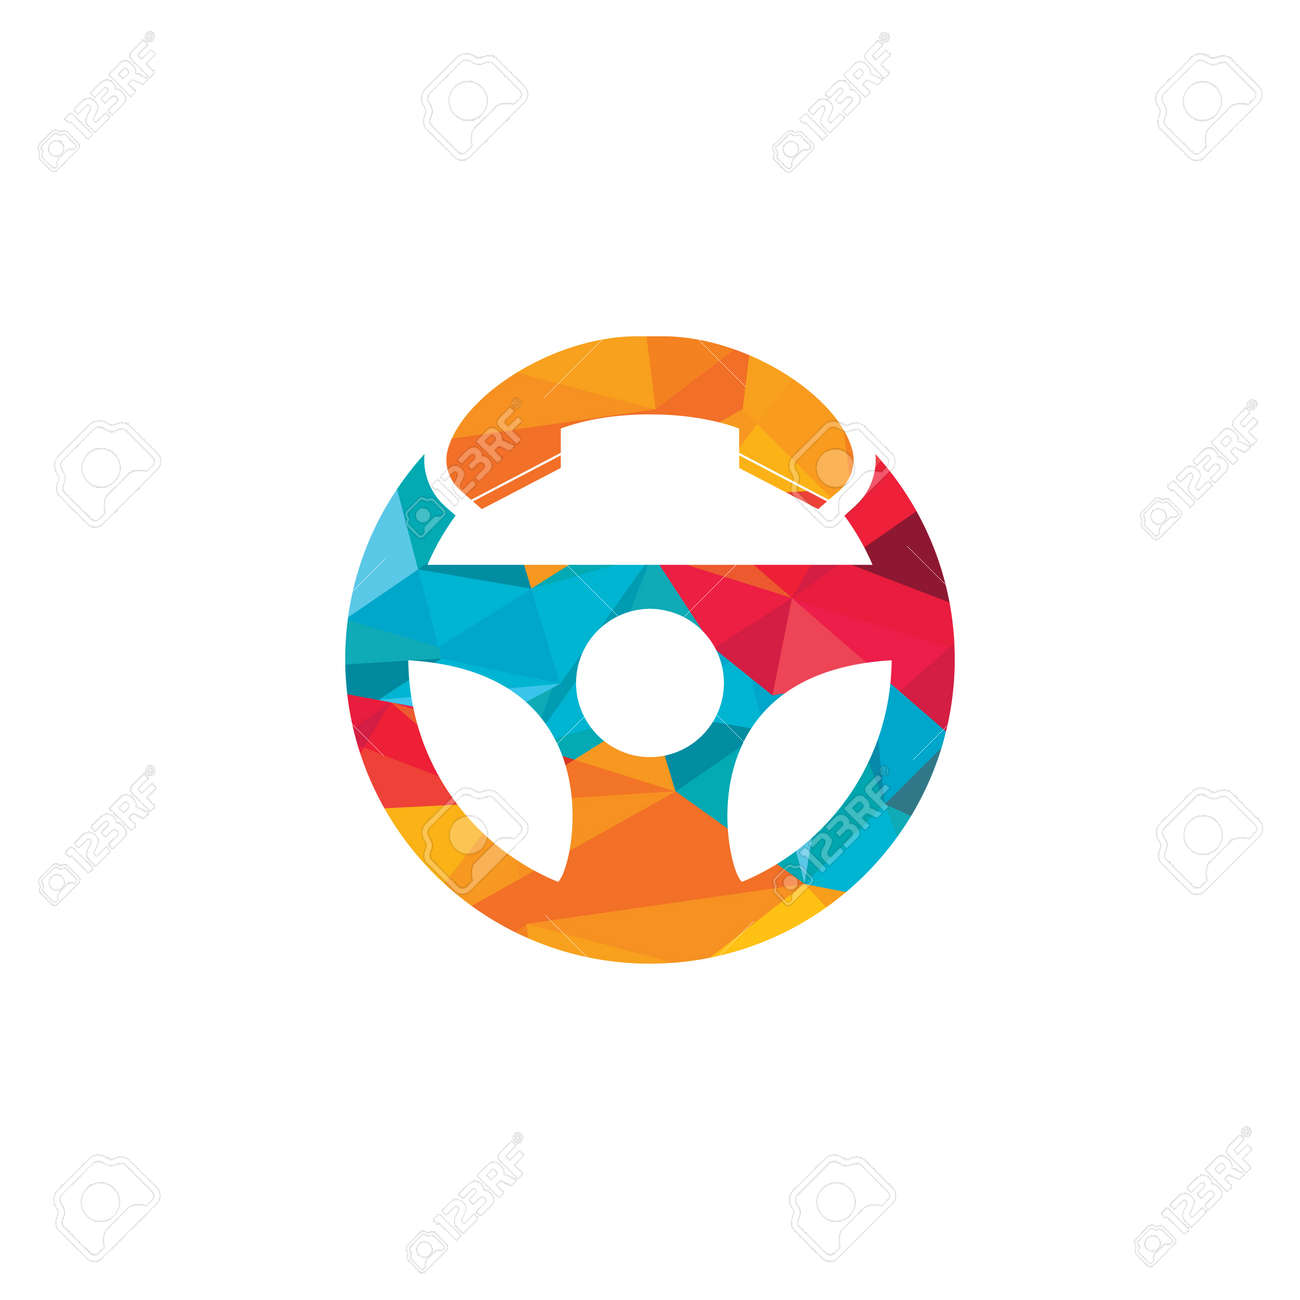 Drive call vector logo design. Steering wheel and phone symbol or icon. - 159177464